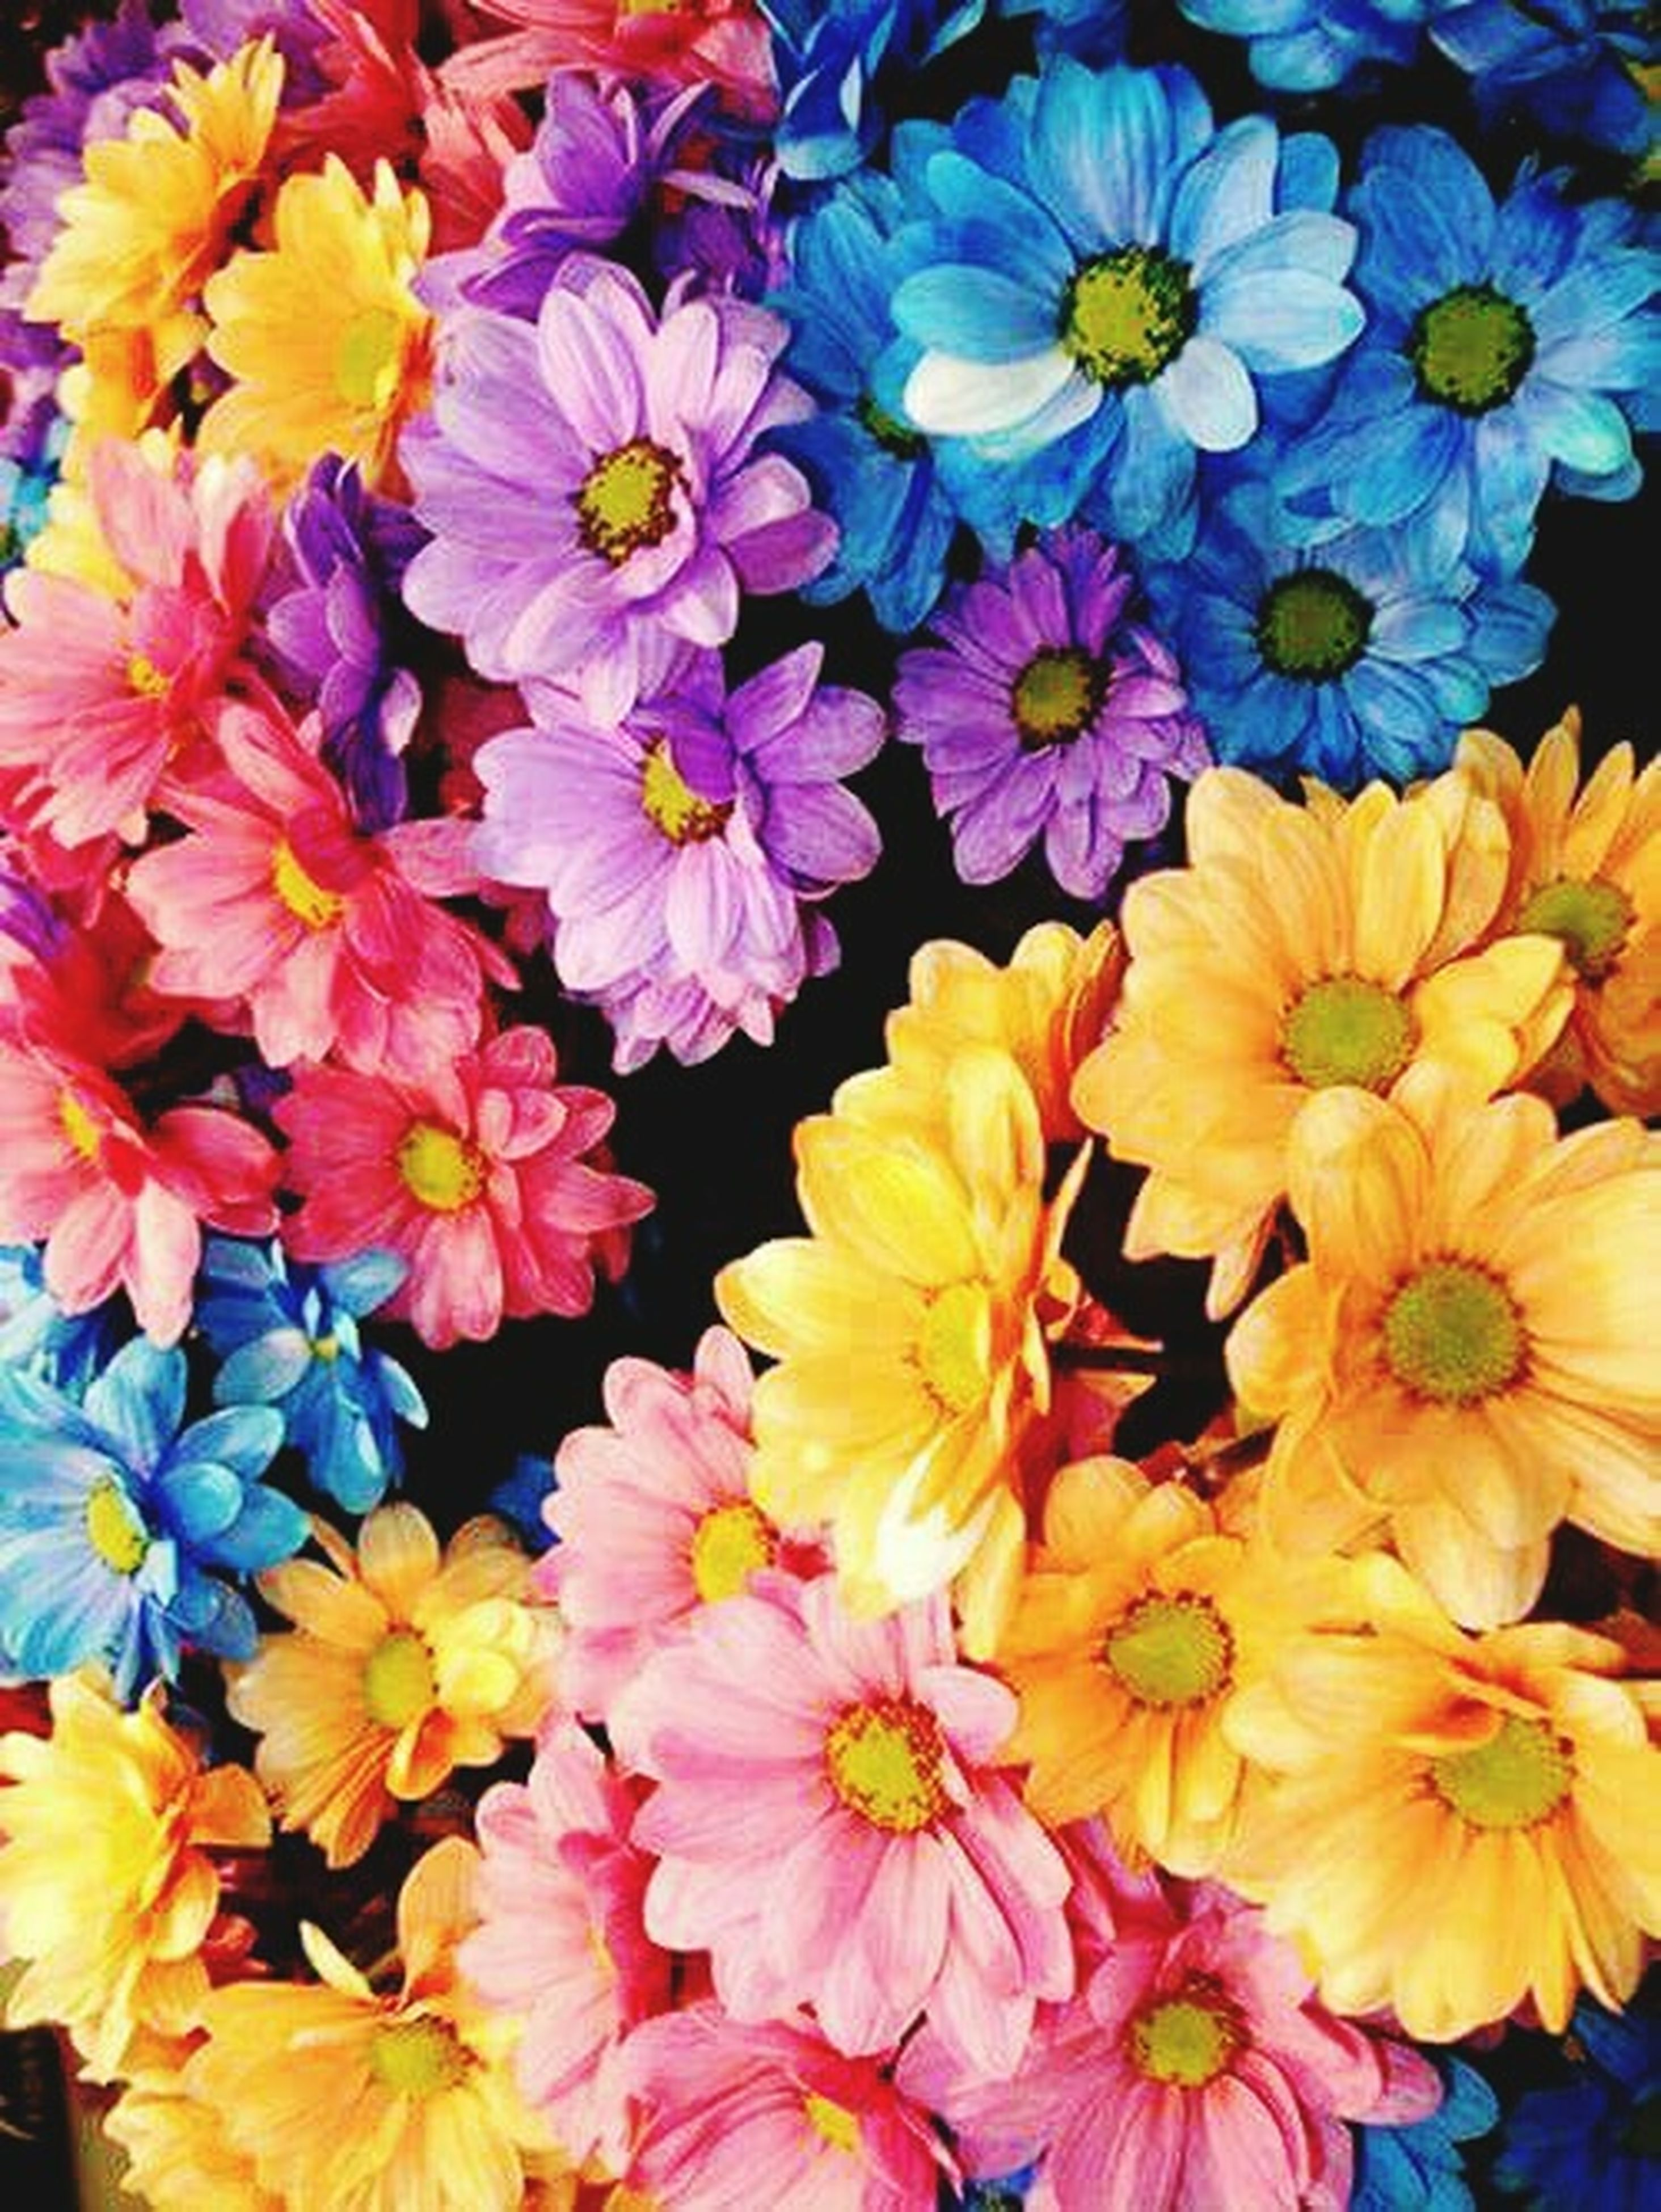 flower, full frame, freshness, petal, backgrounds, fragility, flower head, multi colored, abundance, beauty in nature, yellow, high angle view, close-up, blooming, nature, purple, colorful, vibrant color, growth, variation